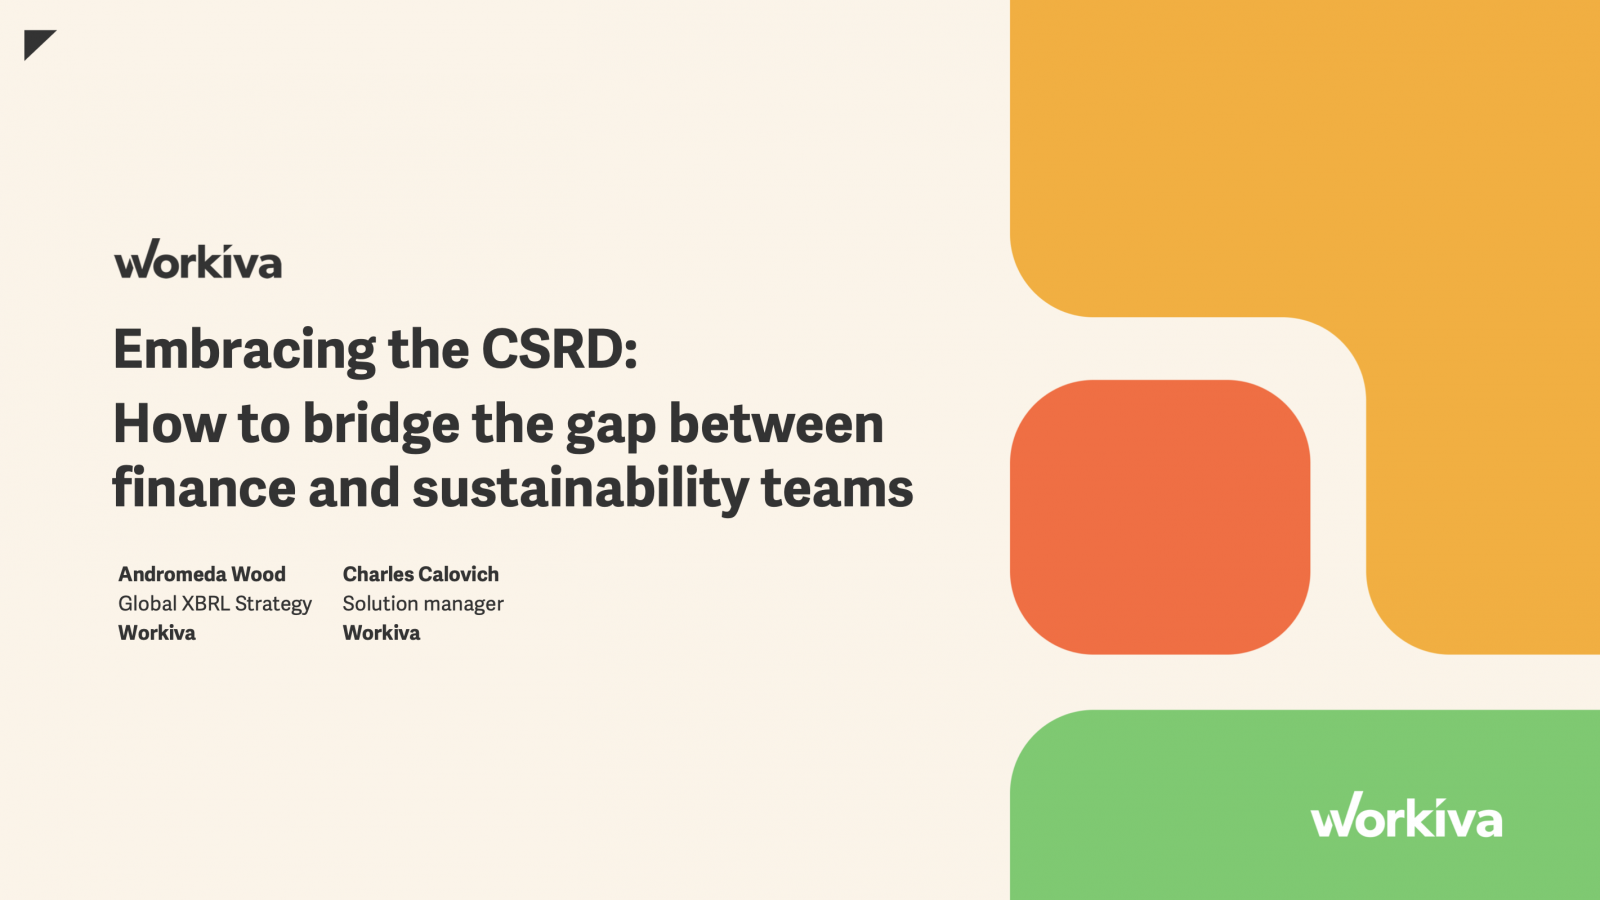 Embracing the CSRD